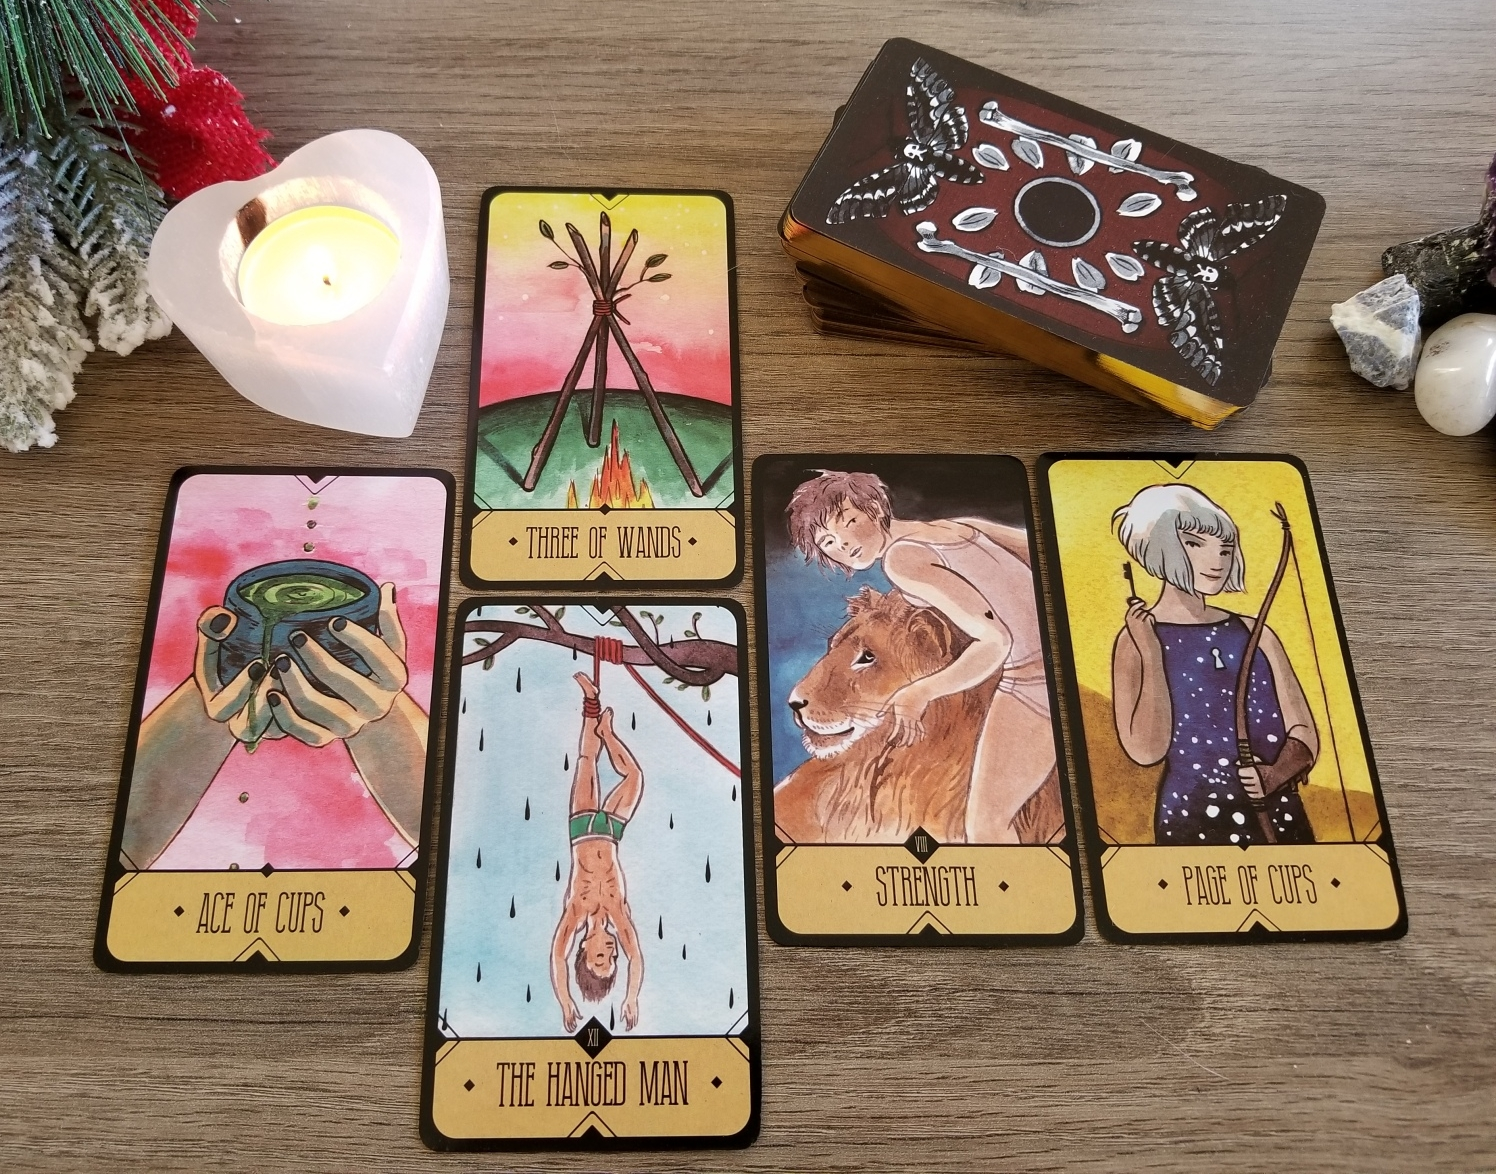 deck interview with the Sasuraibito Tarot